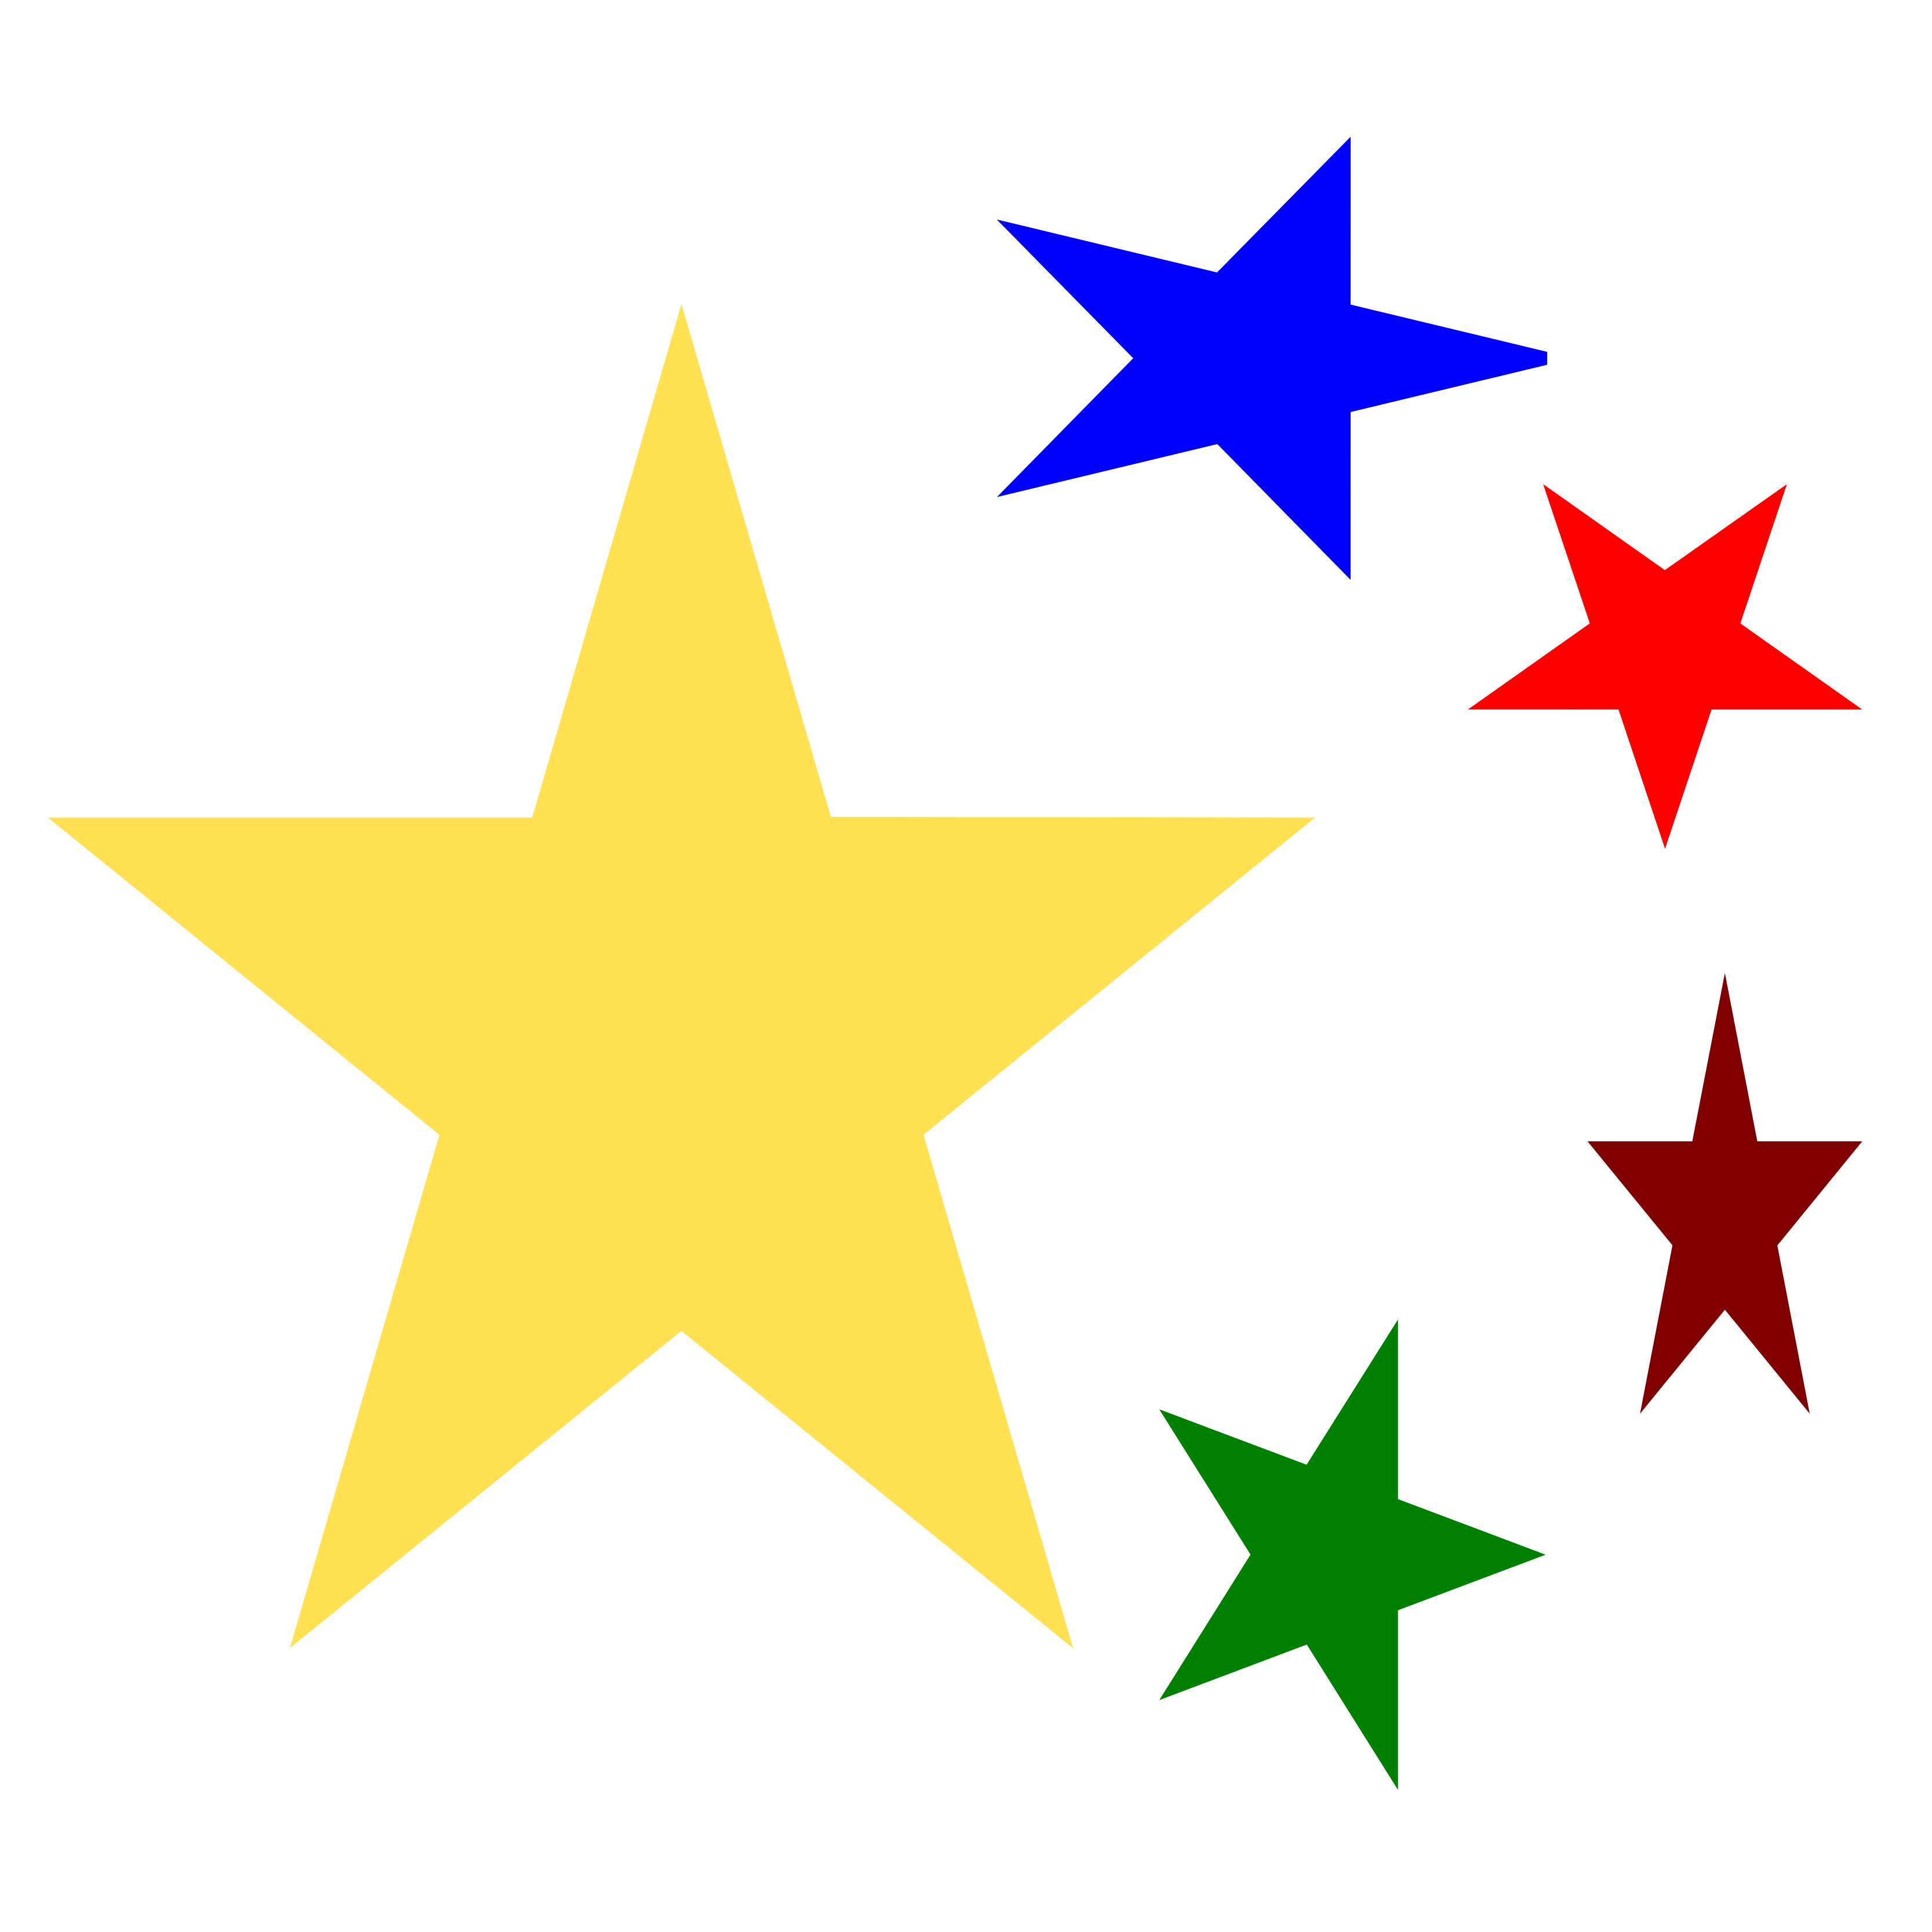 3333x3333 Star Clipart, Suggestions For Star Clipart, Download Star Clipart